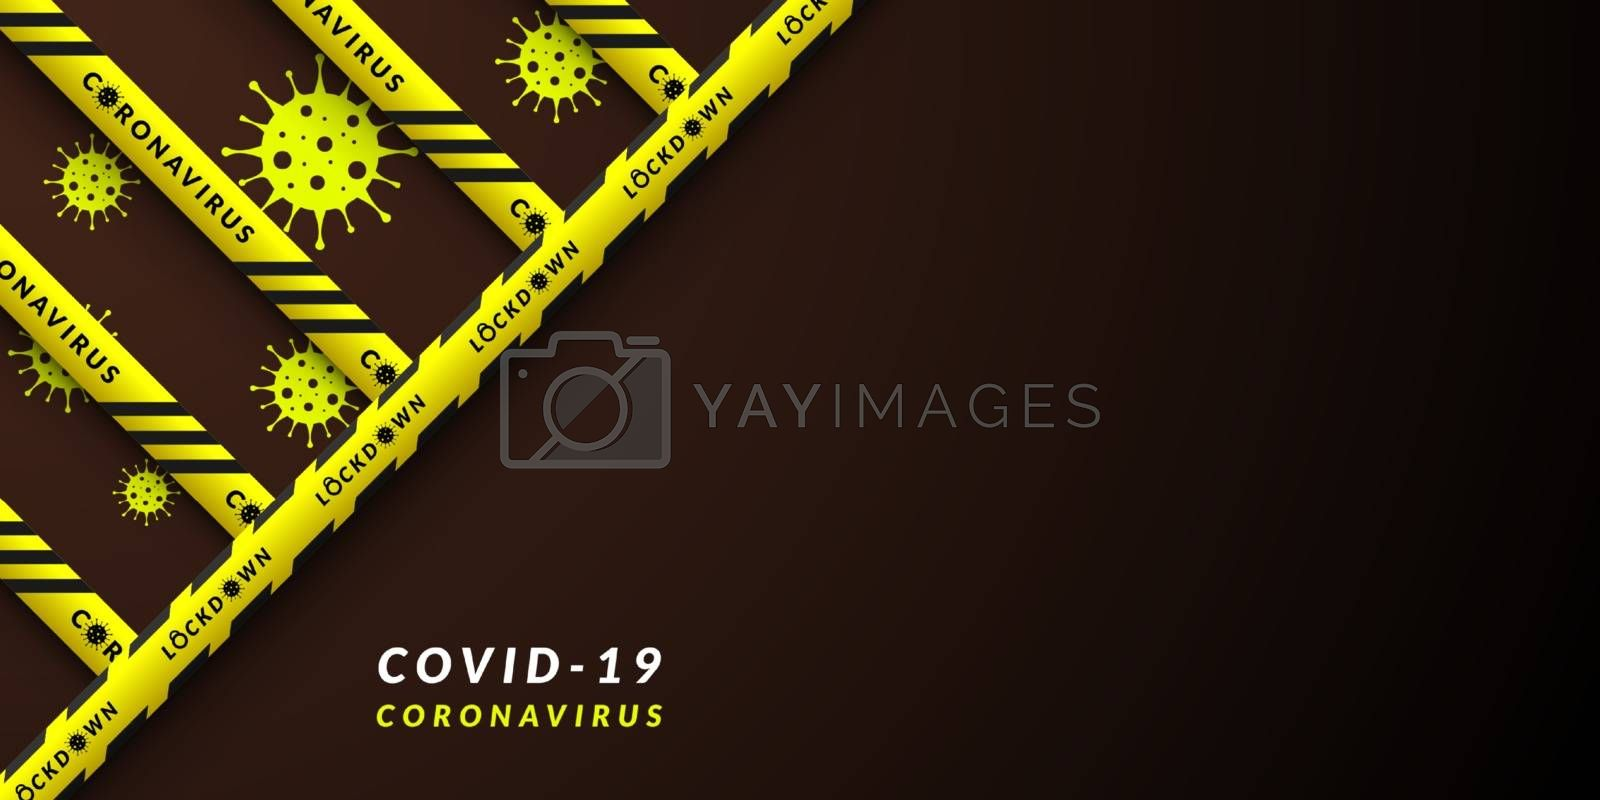 Vector design of corona virus danger warning in yellow and black stripes. Background with copy space. Dividing area Covid-19, quarantine, lockdown.